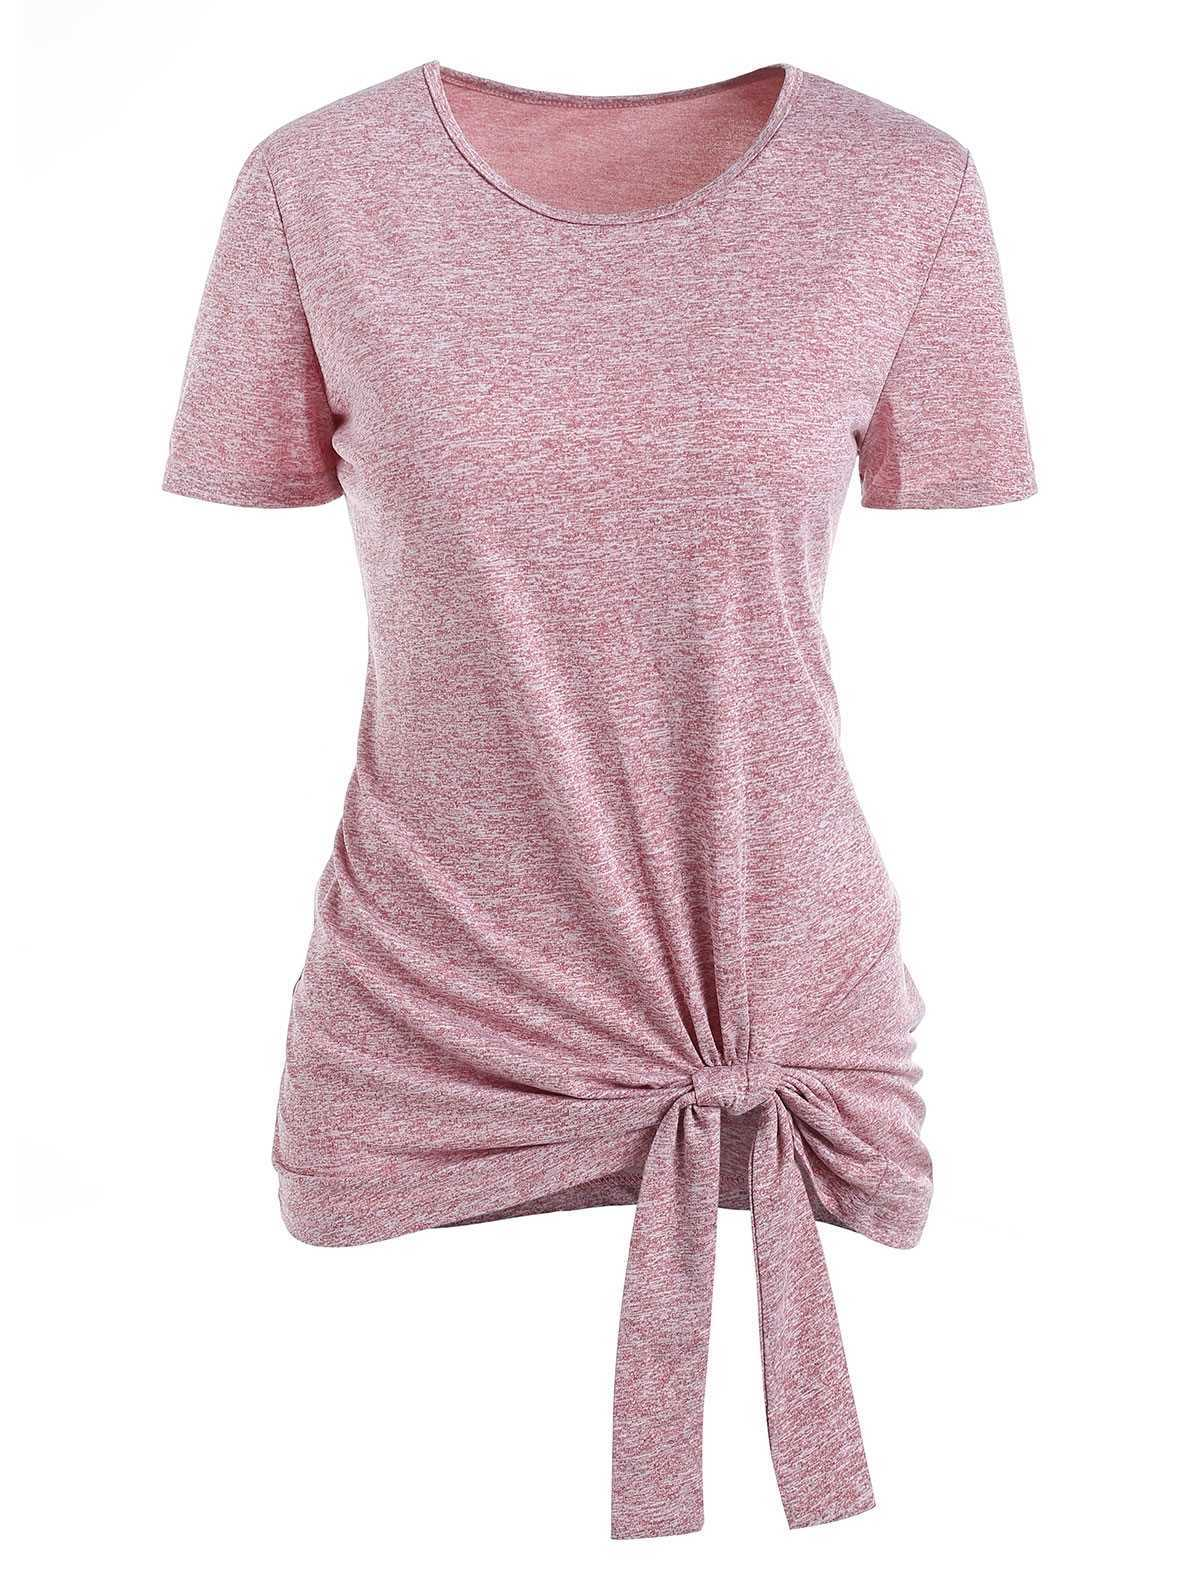 Space Dye Knotted Short Sleeve Tee (Lipstick Pink)